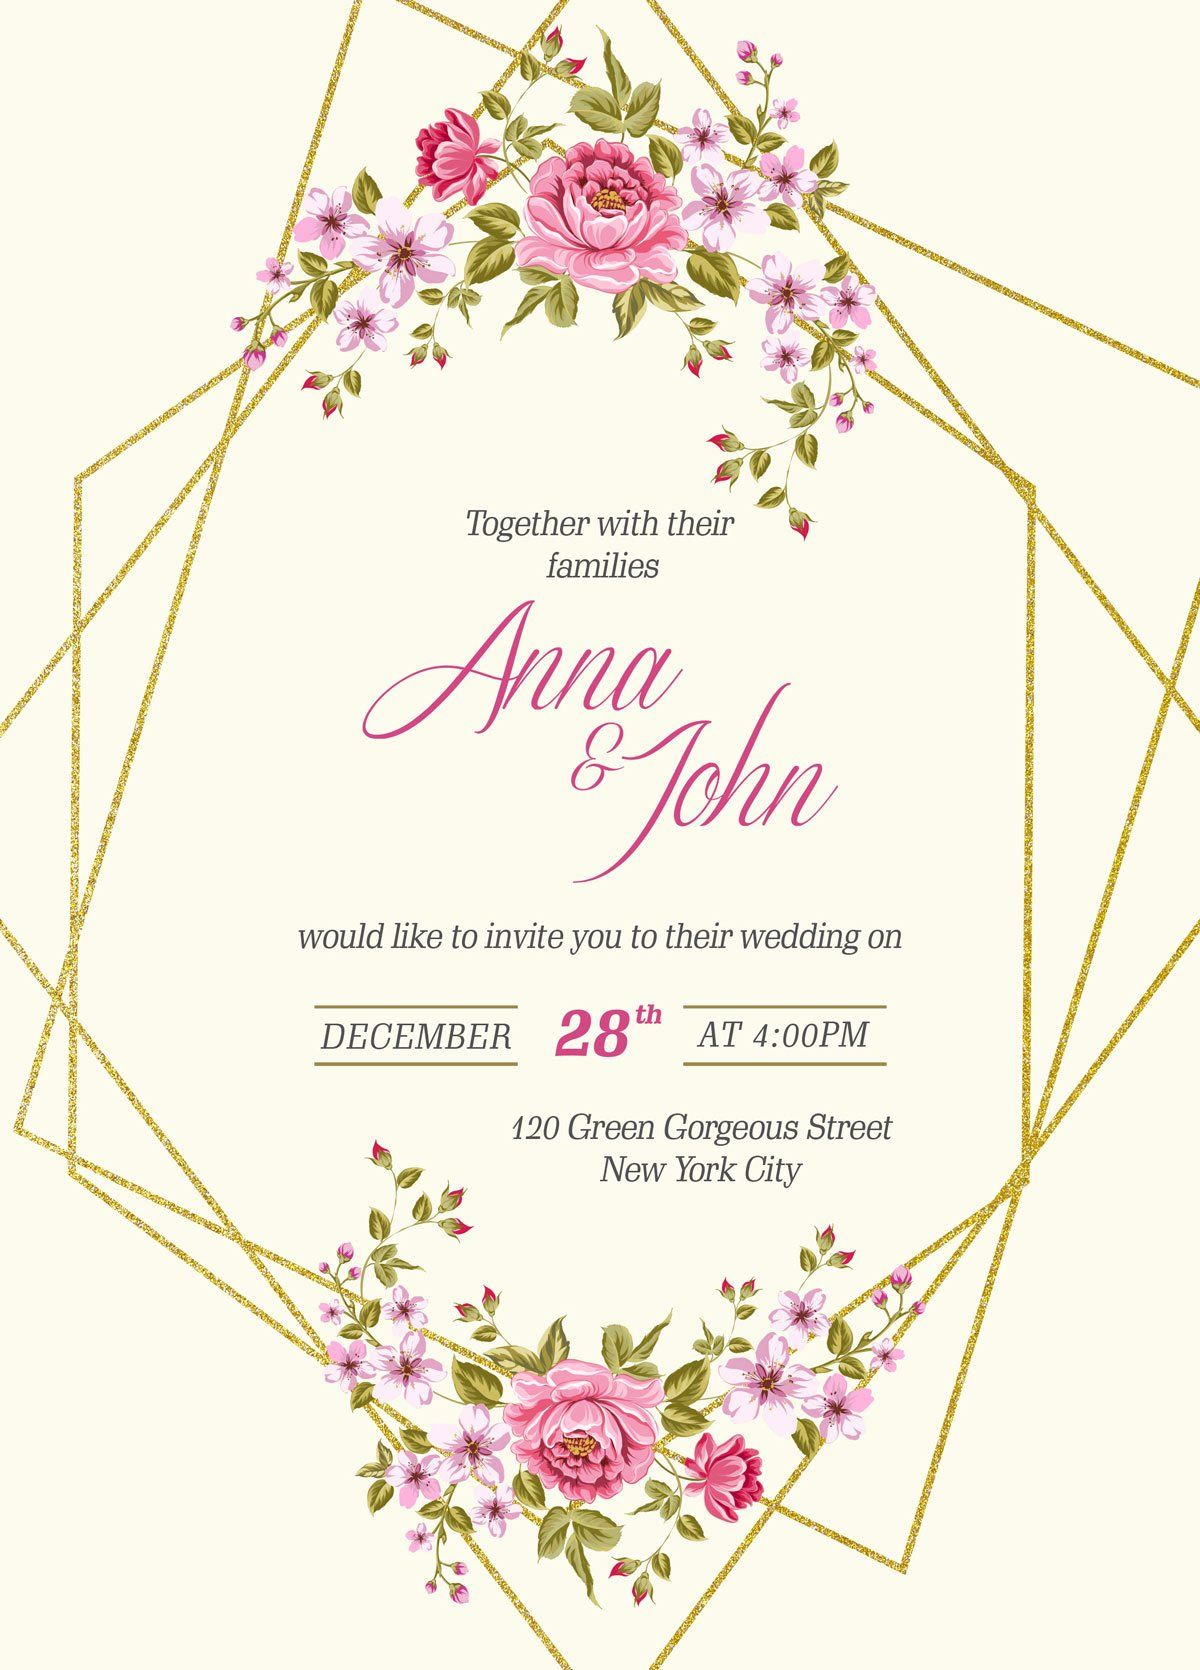 Wedding Invitation Template Free Fresh Free Wedding Invitation